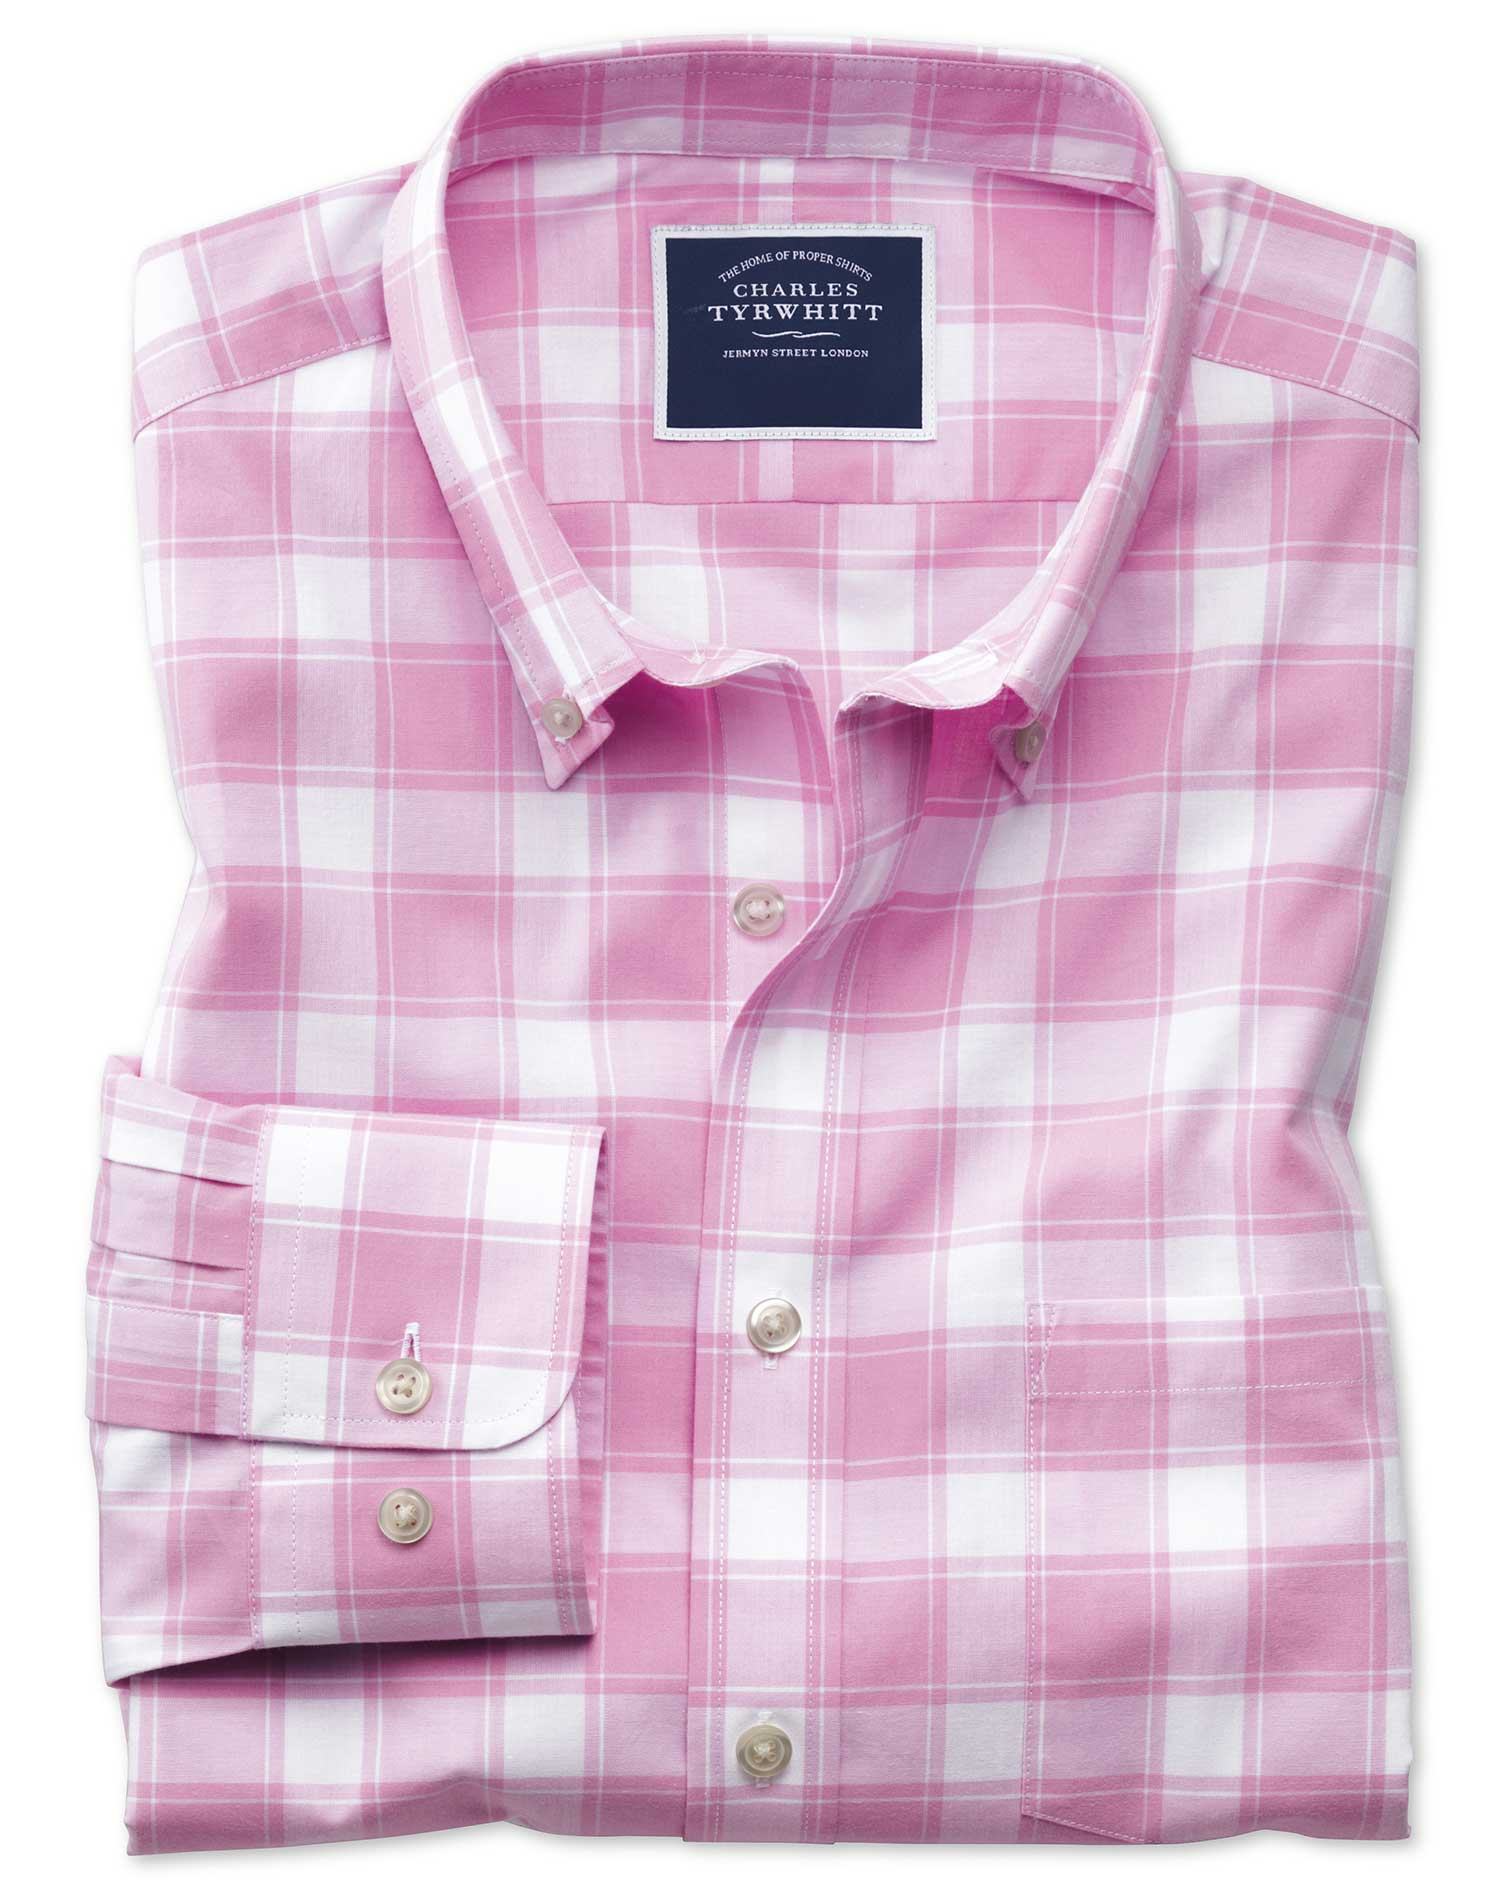 Classic Fit Button-Down Non-Iron Poplin Pink and White Check Cotton Shirt Single Cuff Size Medium by